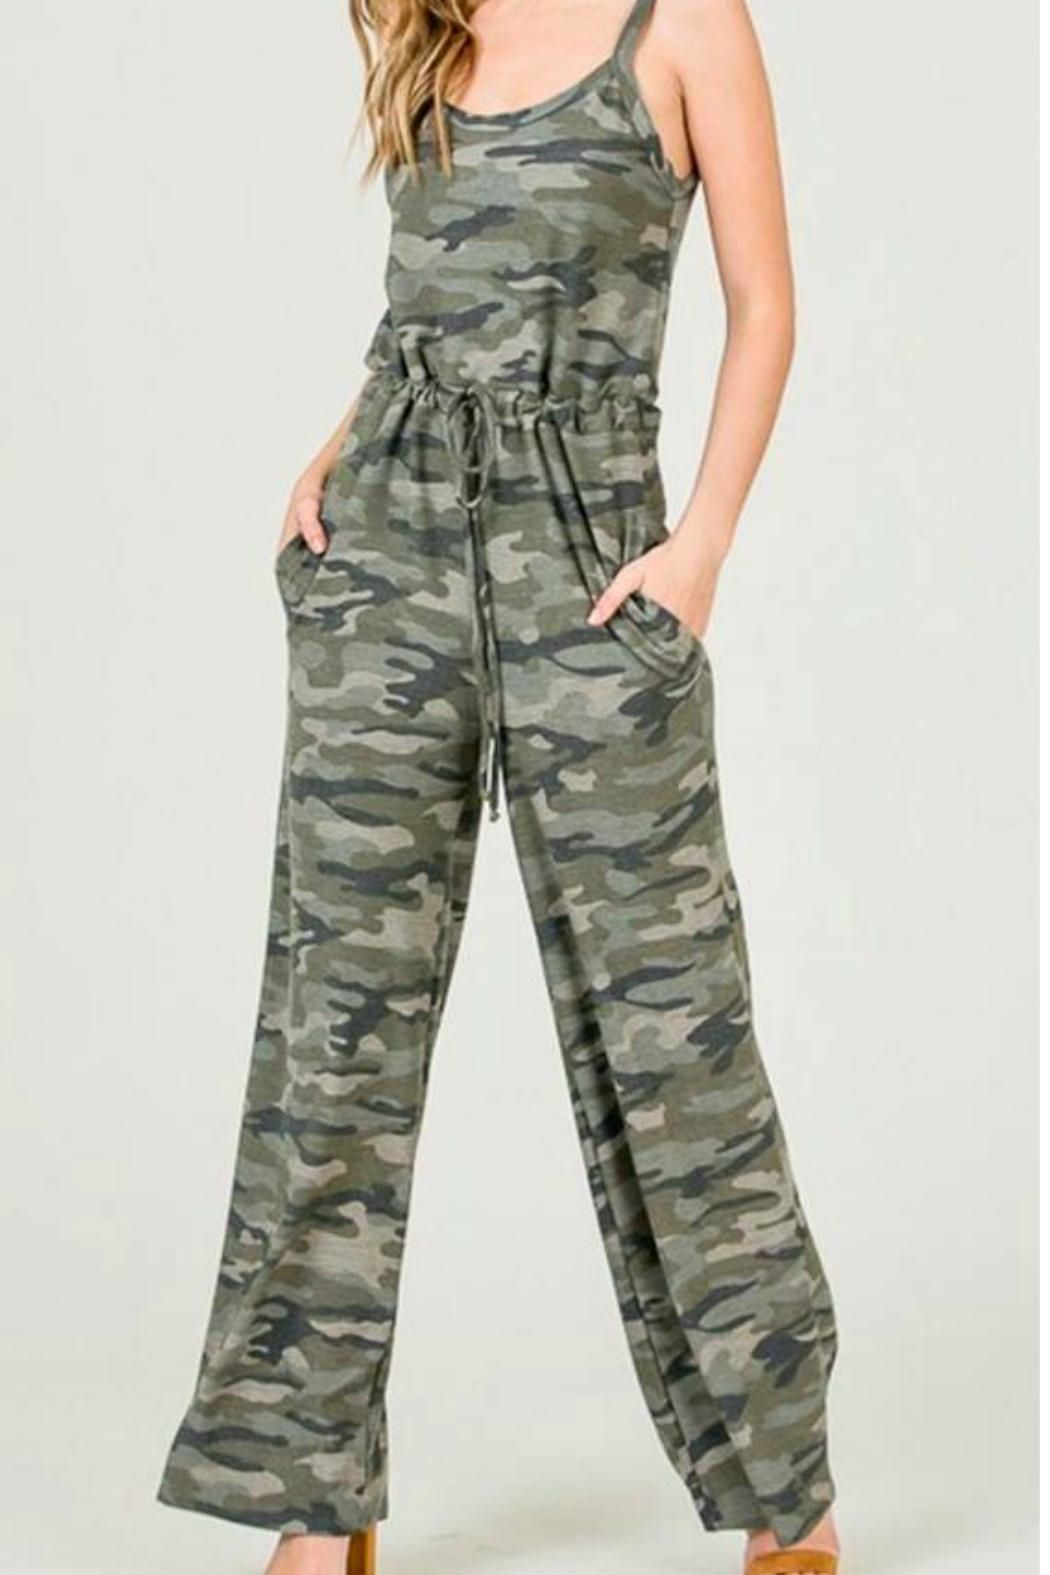 660528eb 7th Ray Camouflage Jumpsuit in 2019 | CHAMBRAY TENCEL GROUP ...